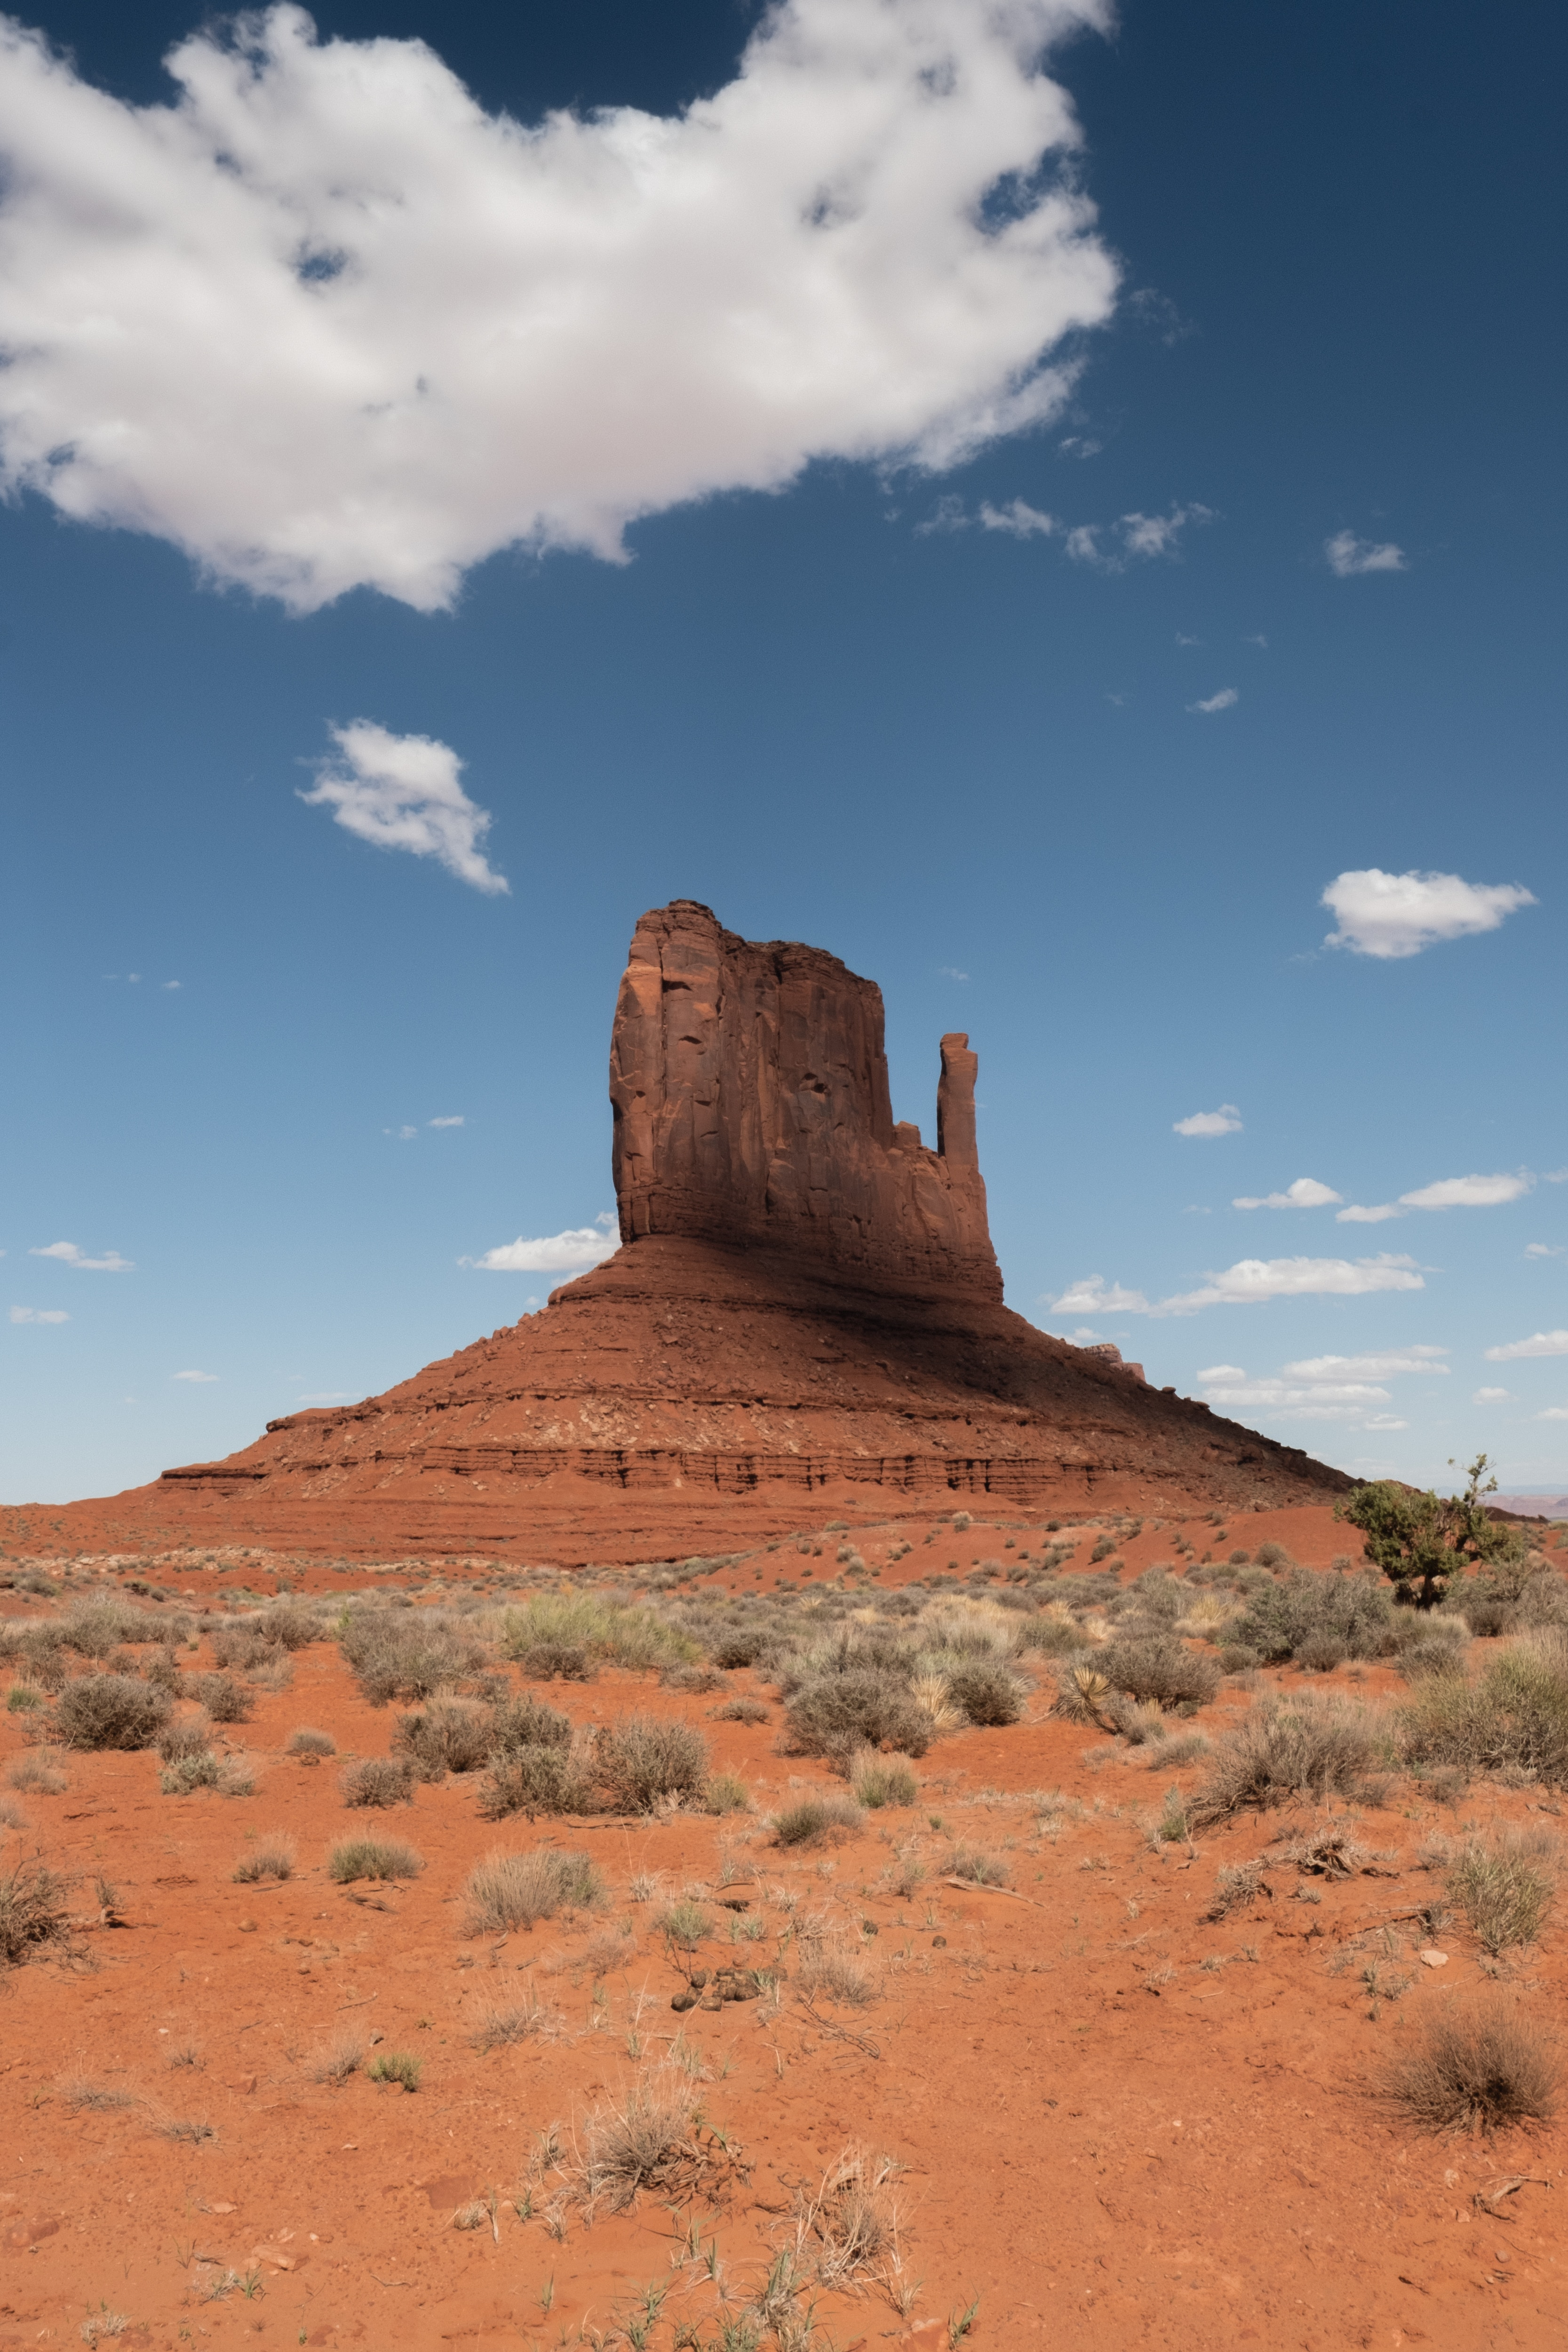 78549 download wallpaper Nature, Rock, Mountain, Vertex, Top, Canyon, Desert screensavers and pictures for free